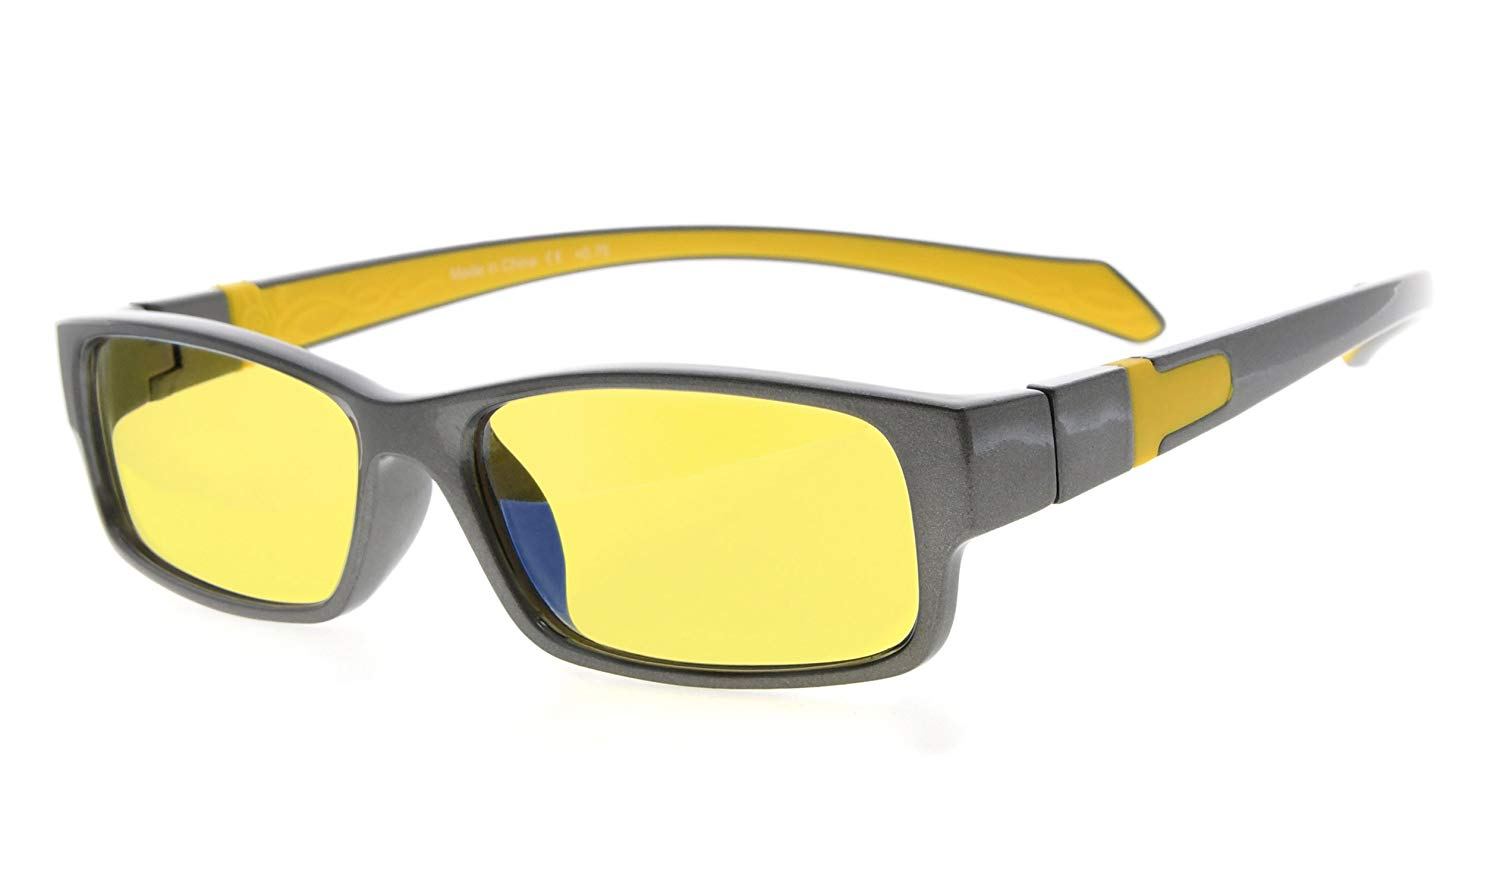 3aa9af756d4ba Eyekepper Computer Reading Glasses Anti Blue Light More than 94% TR90 Frame  Yellow Tinted Lens Grey Yellow CGXM02